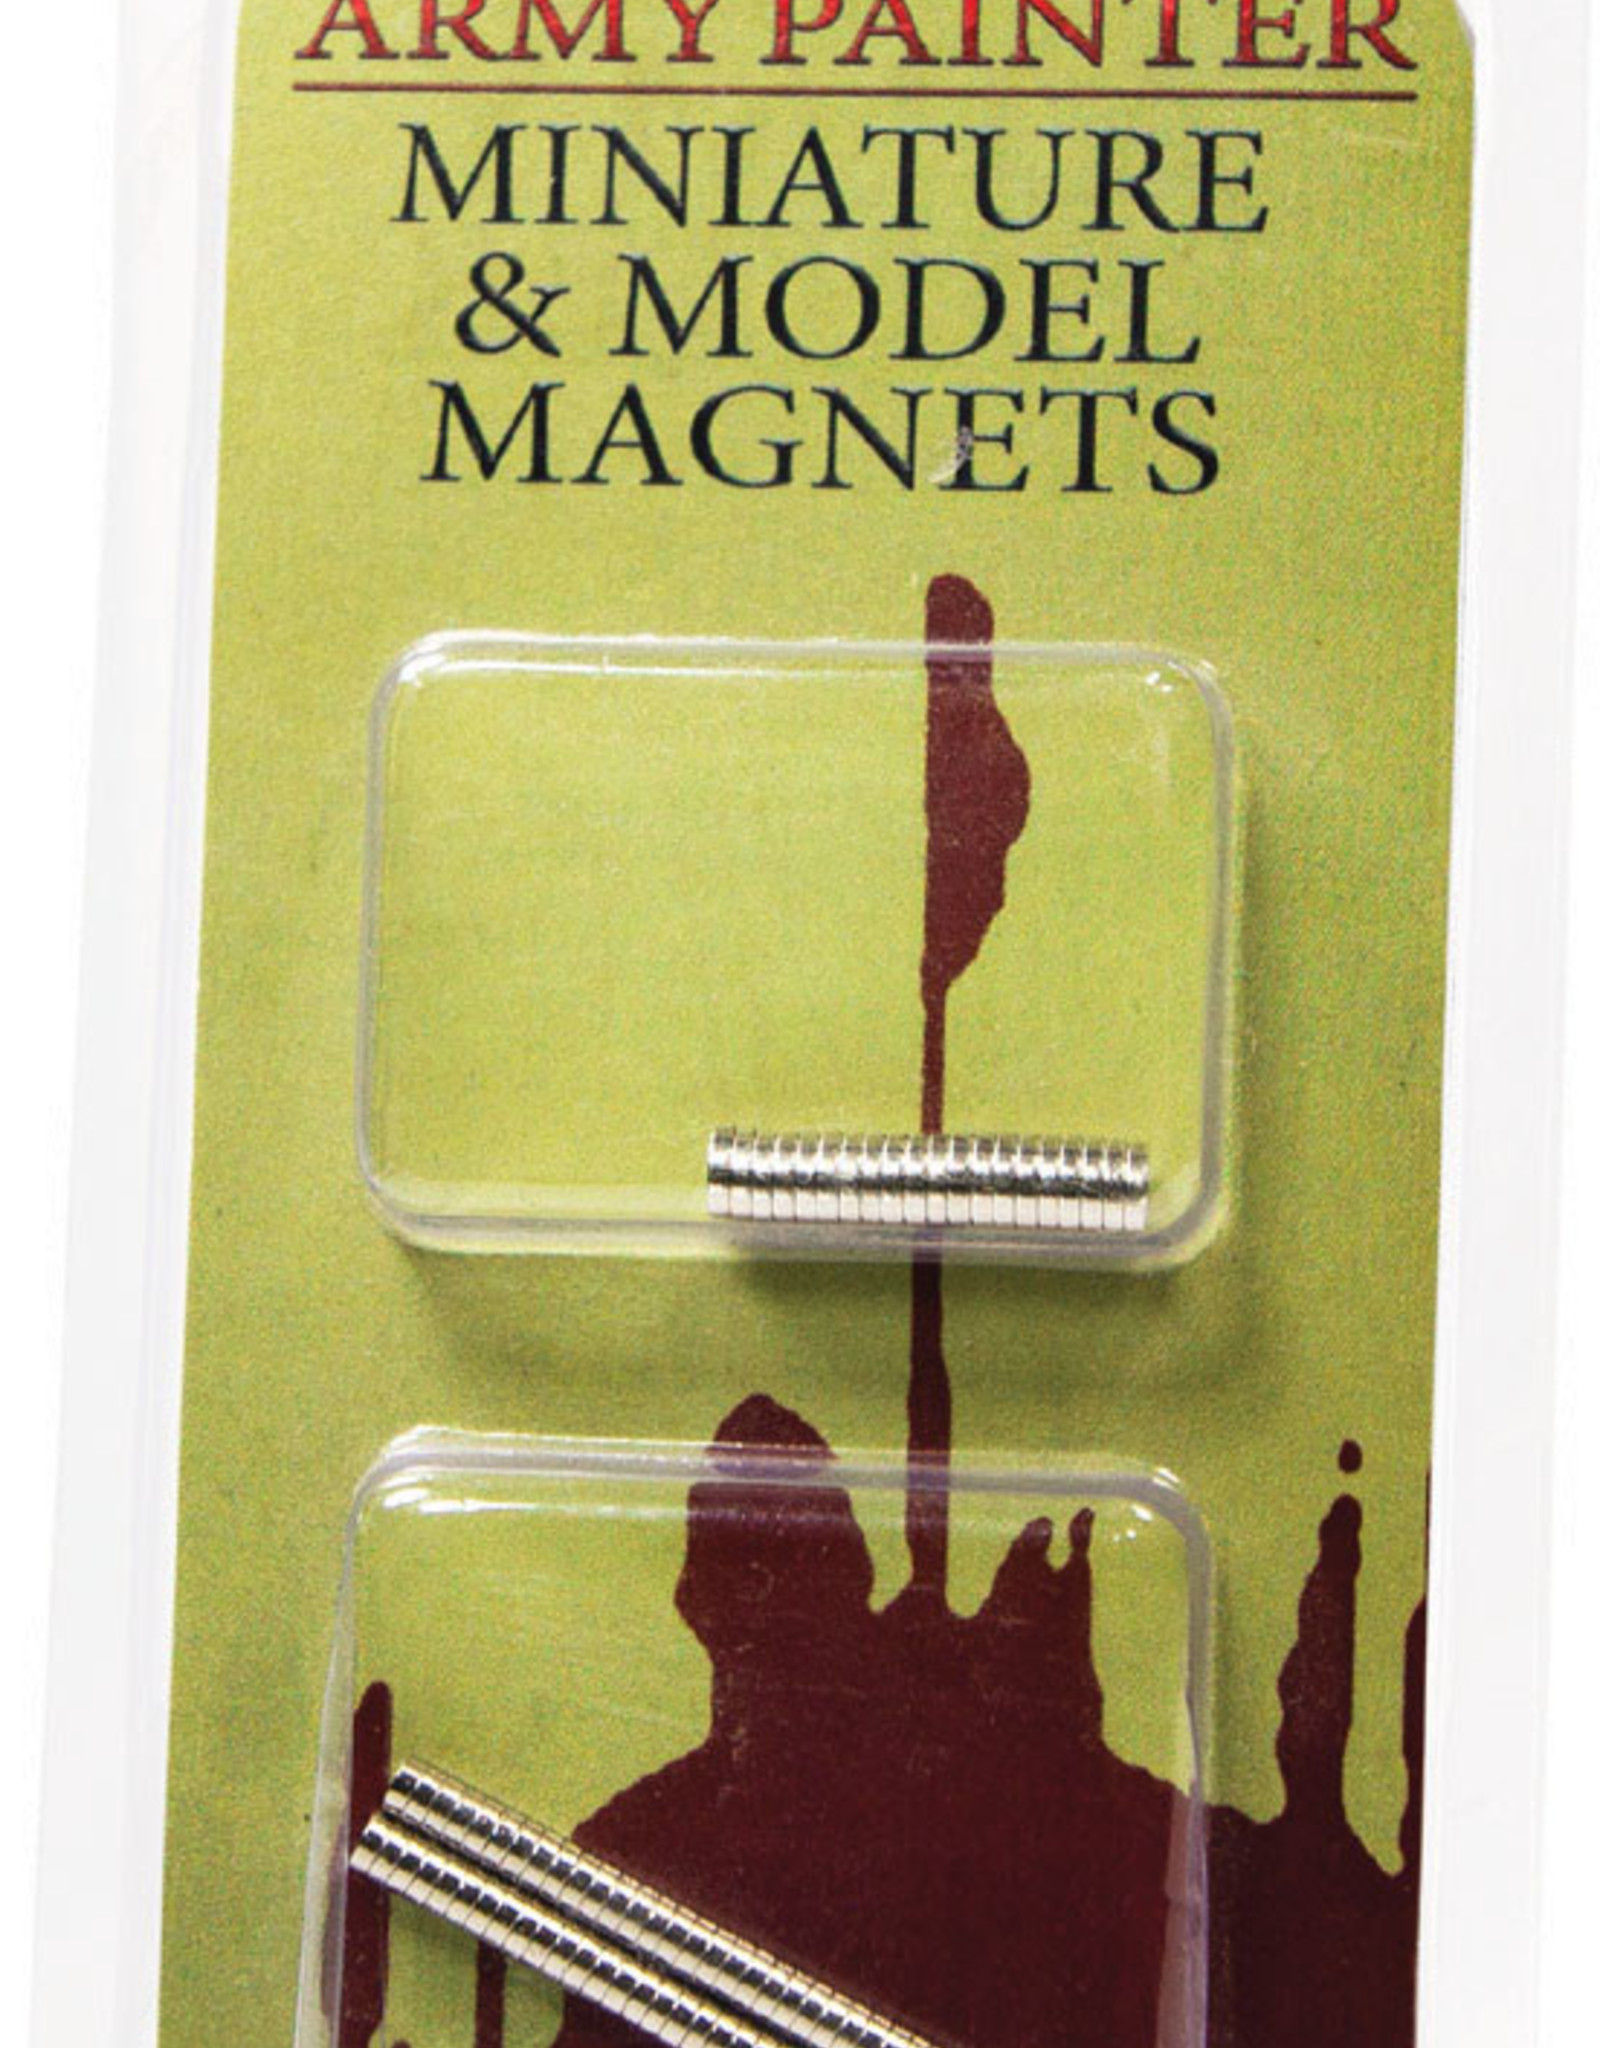 Army Painter Army Painter: Mini & Model Magnets